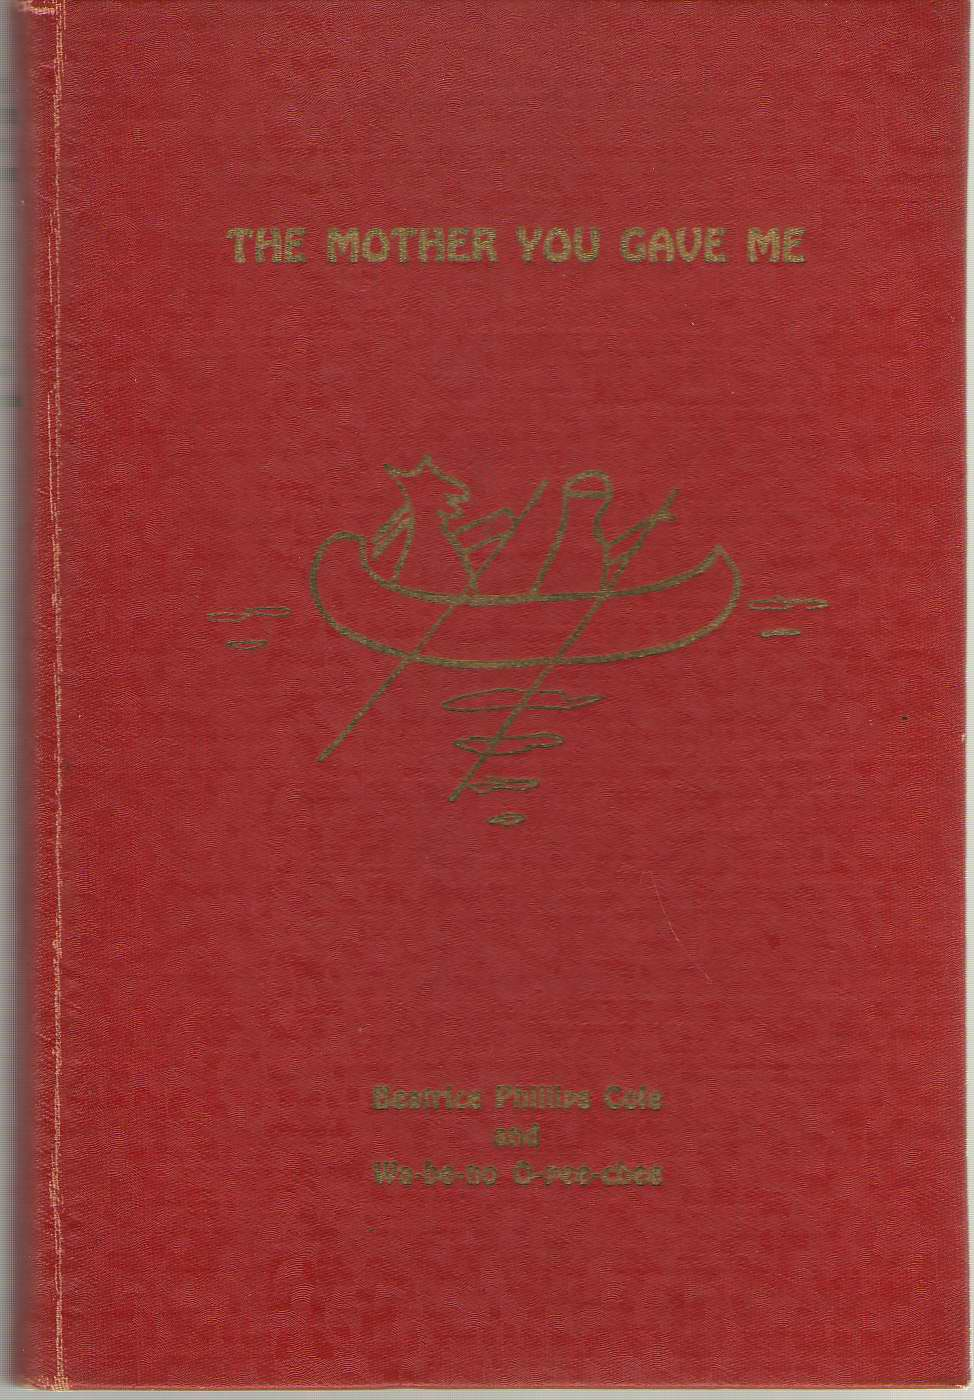 The Mother You Gave Me, Cole, Beatrice Phillips & Wa-Be-No O-Pee-Chee